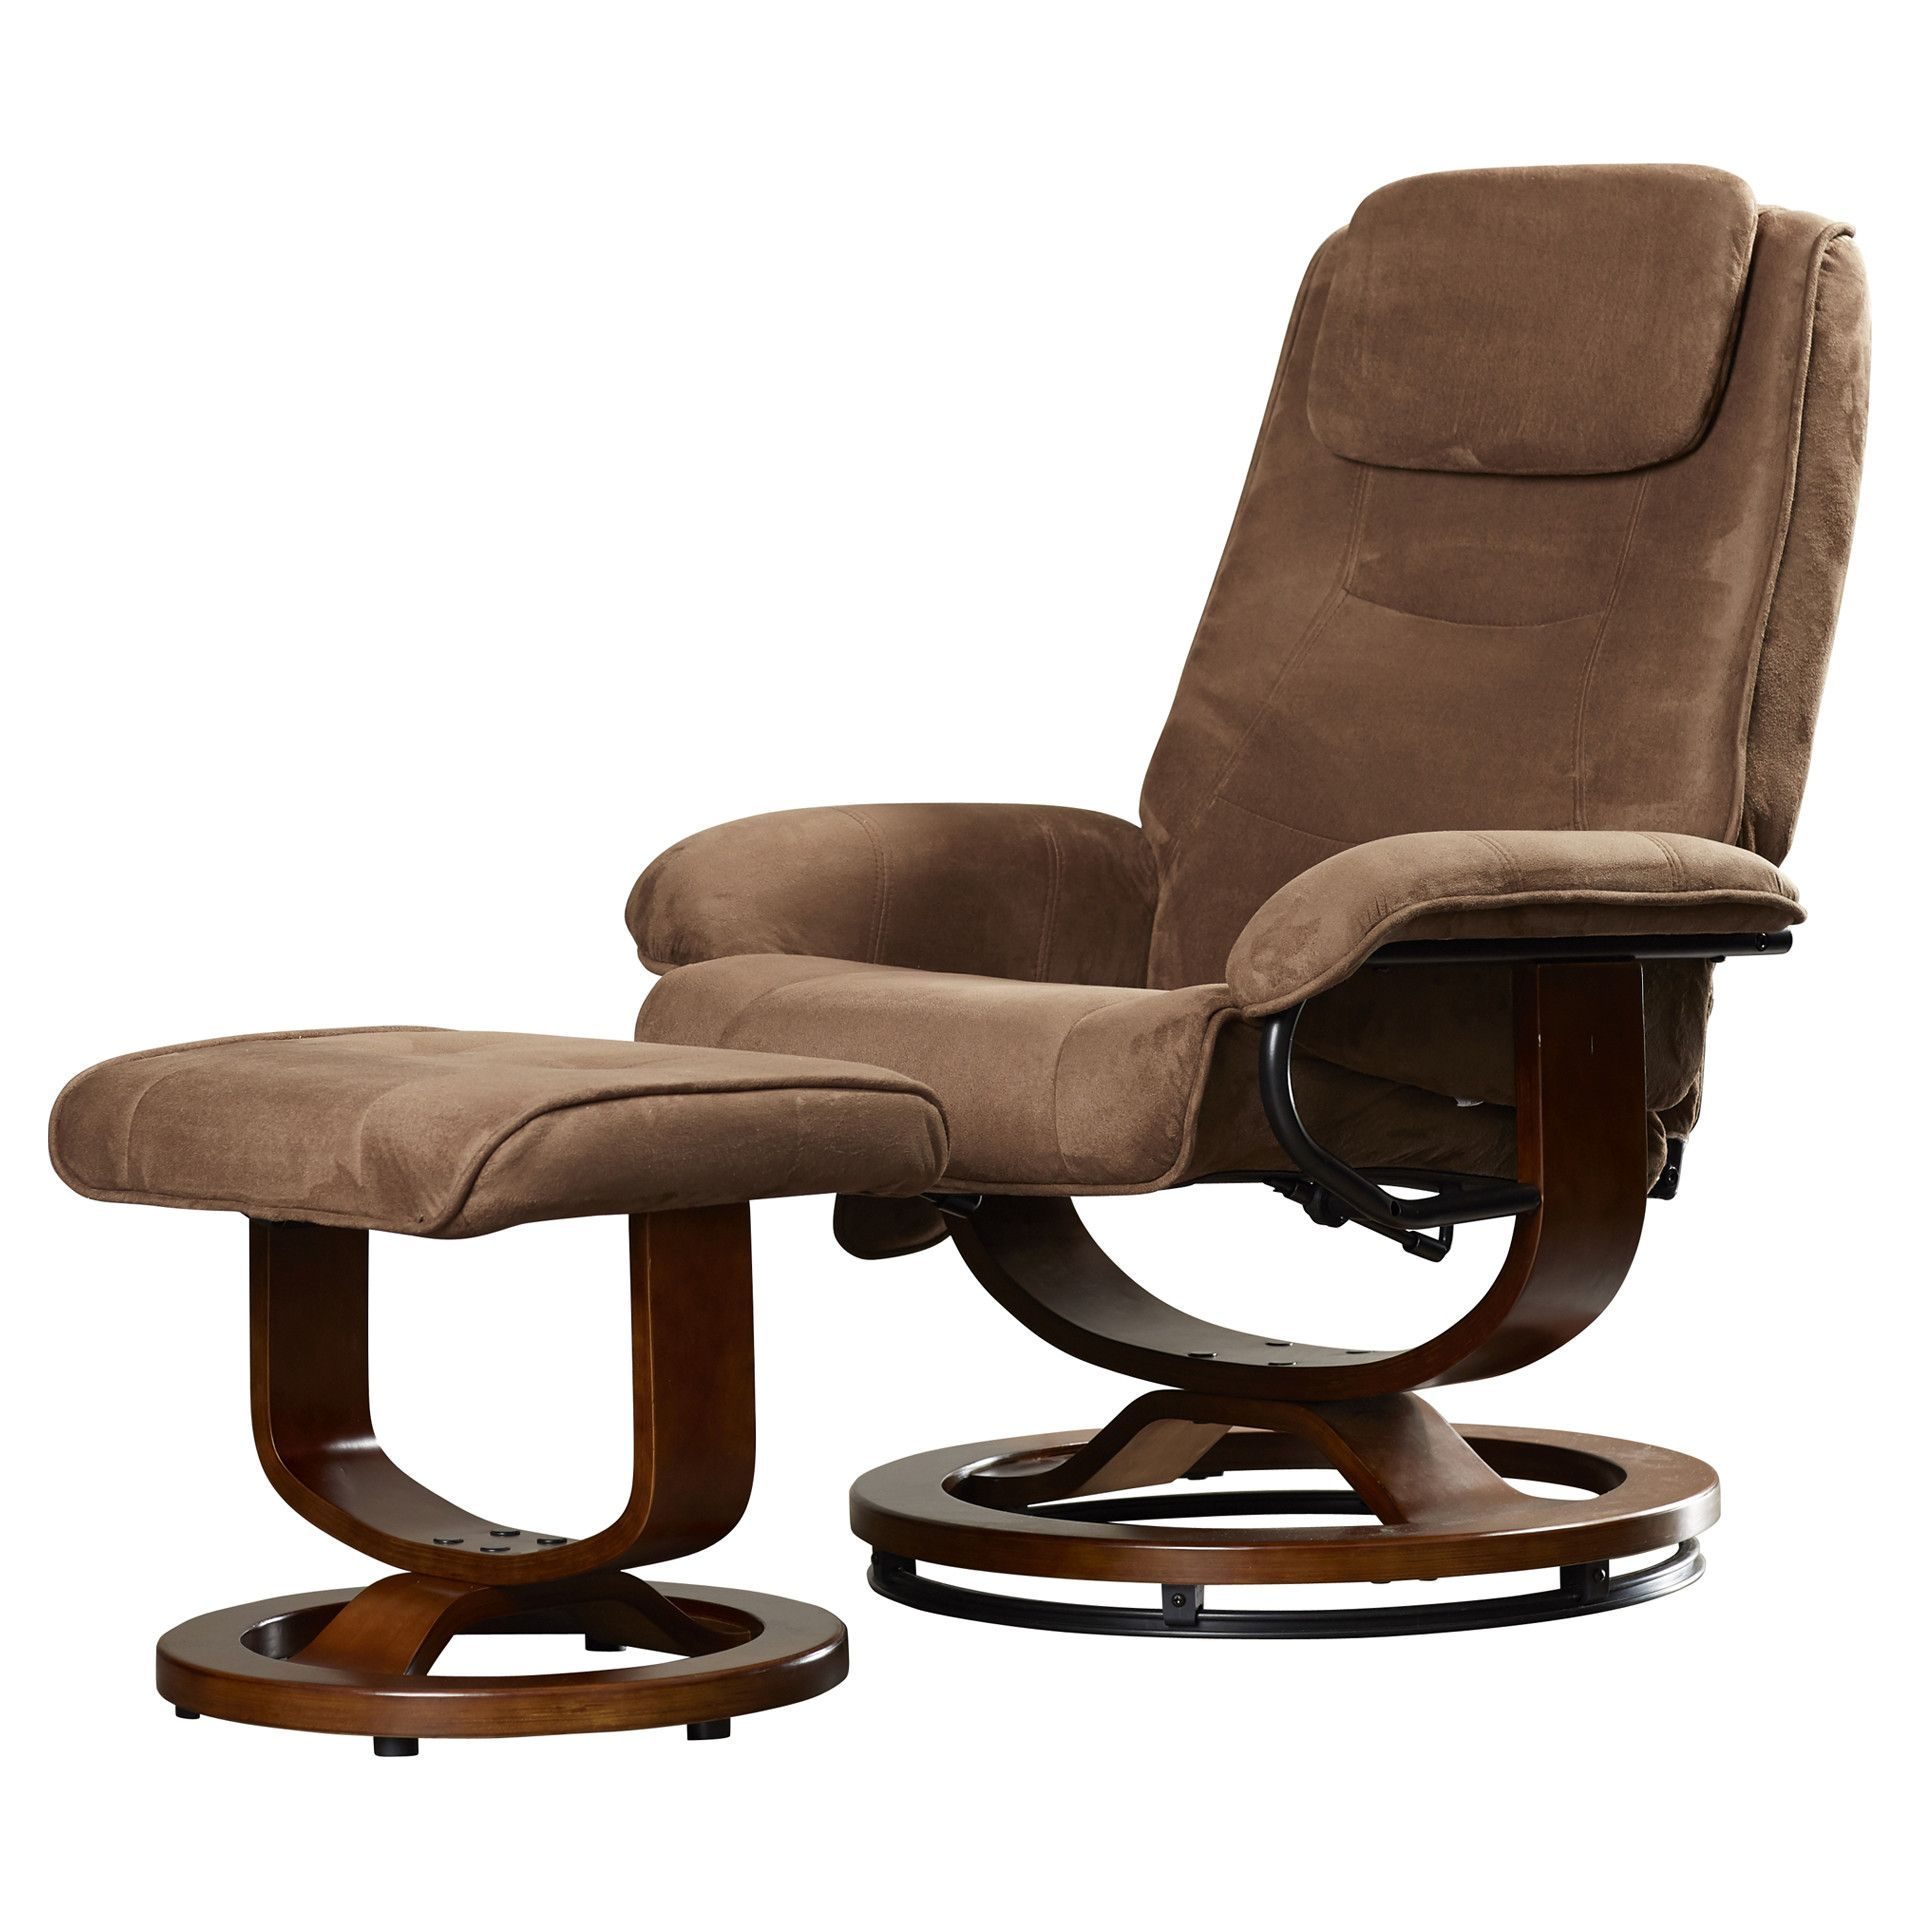 Relaxsessel Mit Massagefunktion Susannah Reclining Heated Massage Chair With Ottoman Relaxation